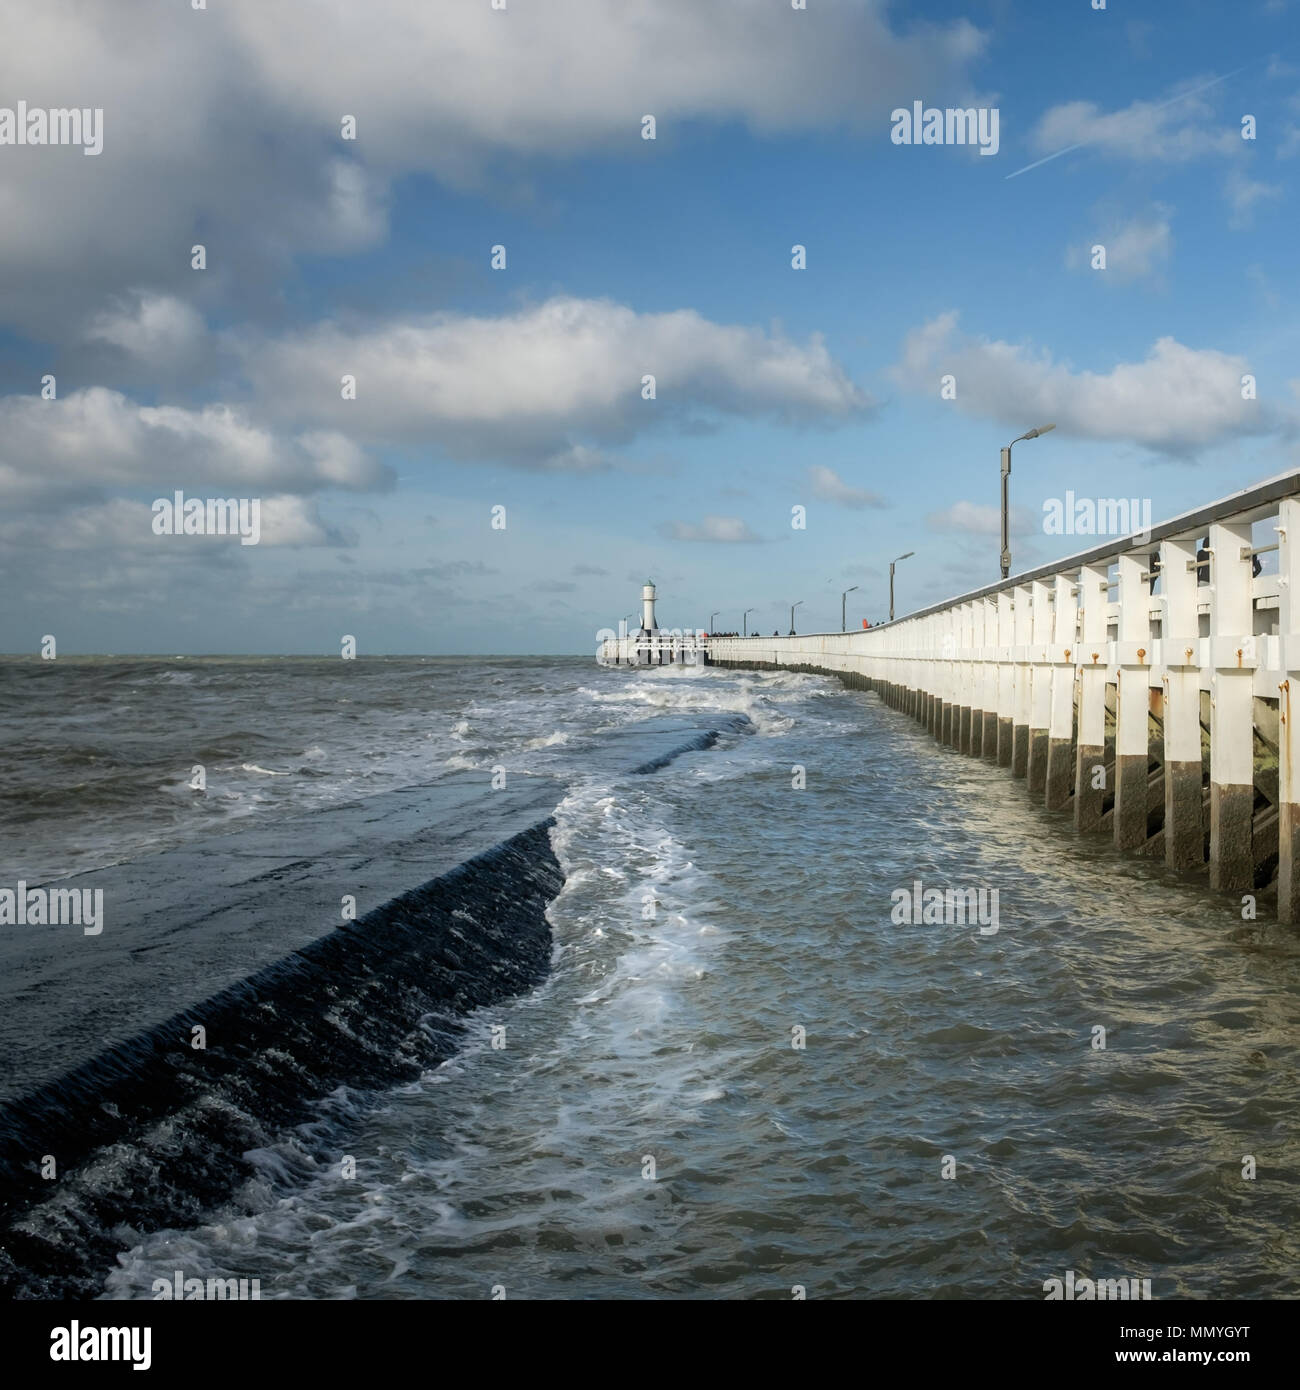 View on waves and old wooden pier of Nieuwpoort in Belgium. Stock Photo